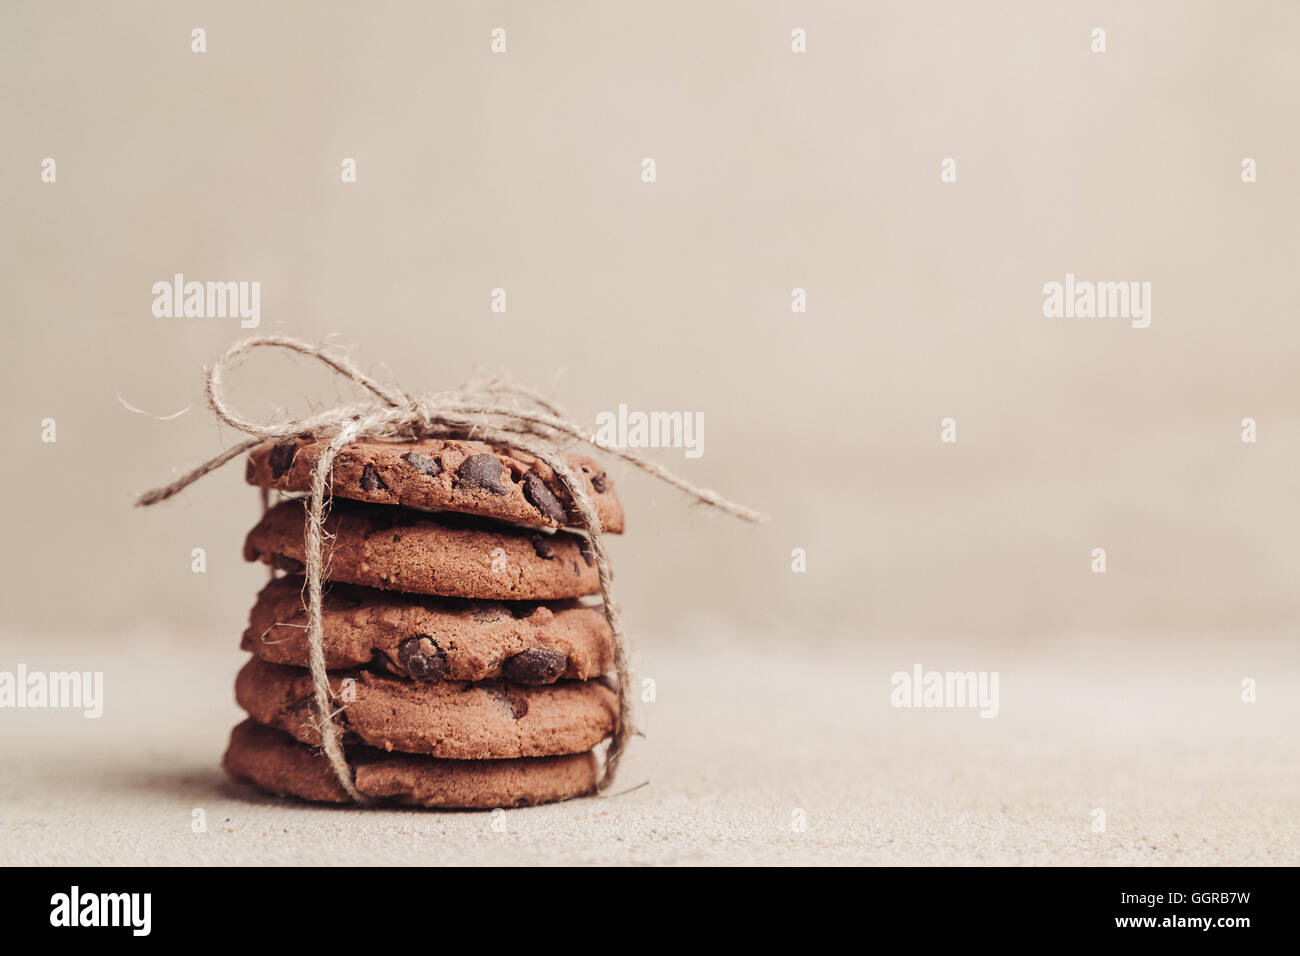 Stacked chocolate chip cookies on grey table - Stock Image